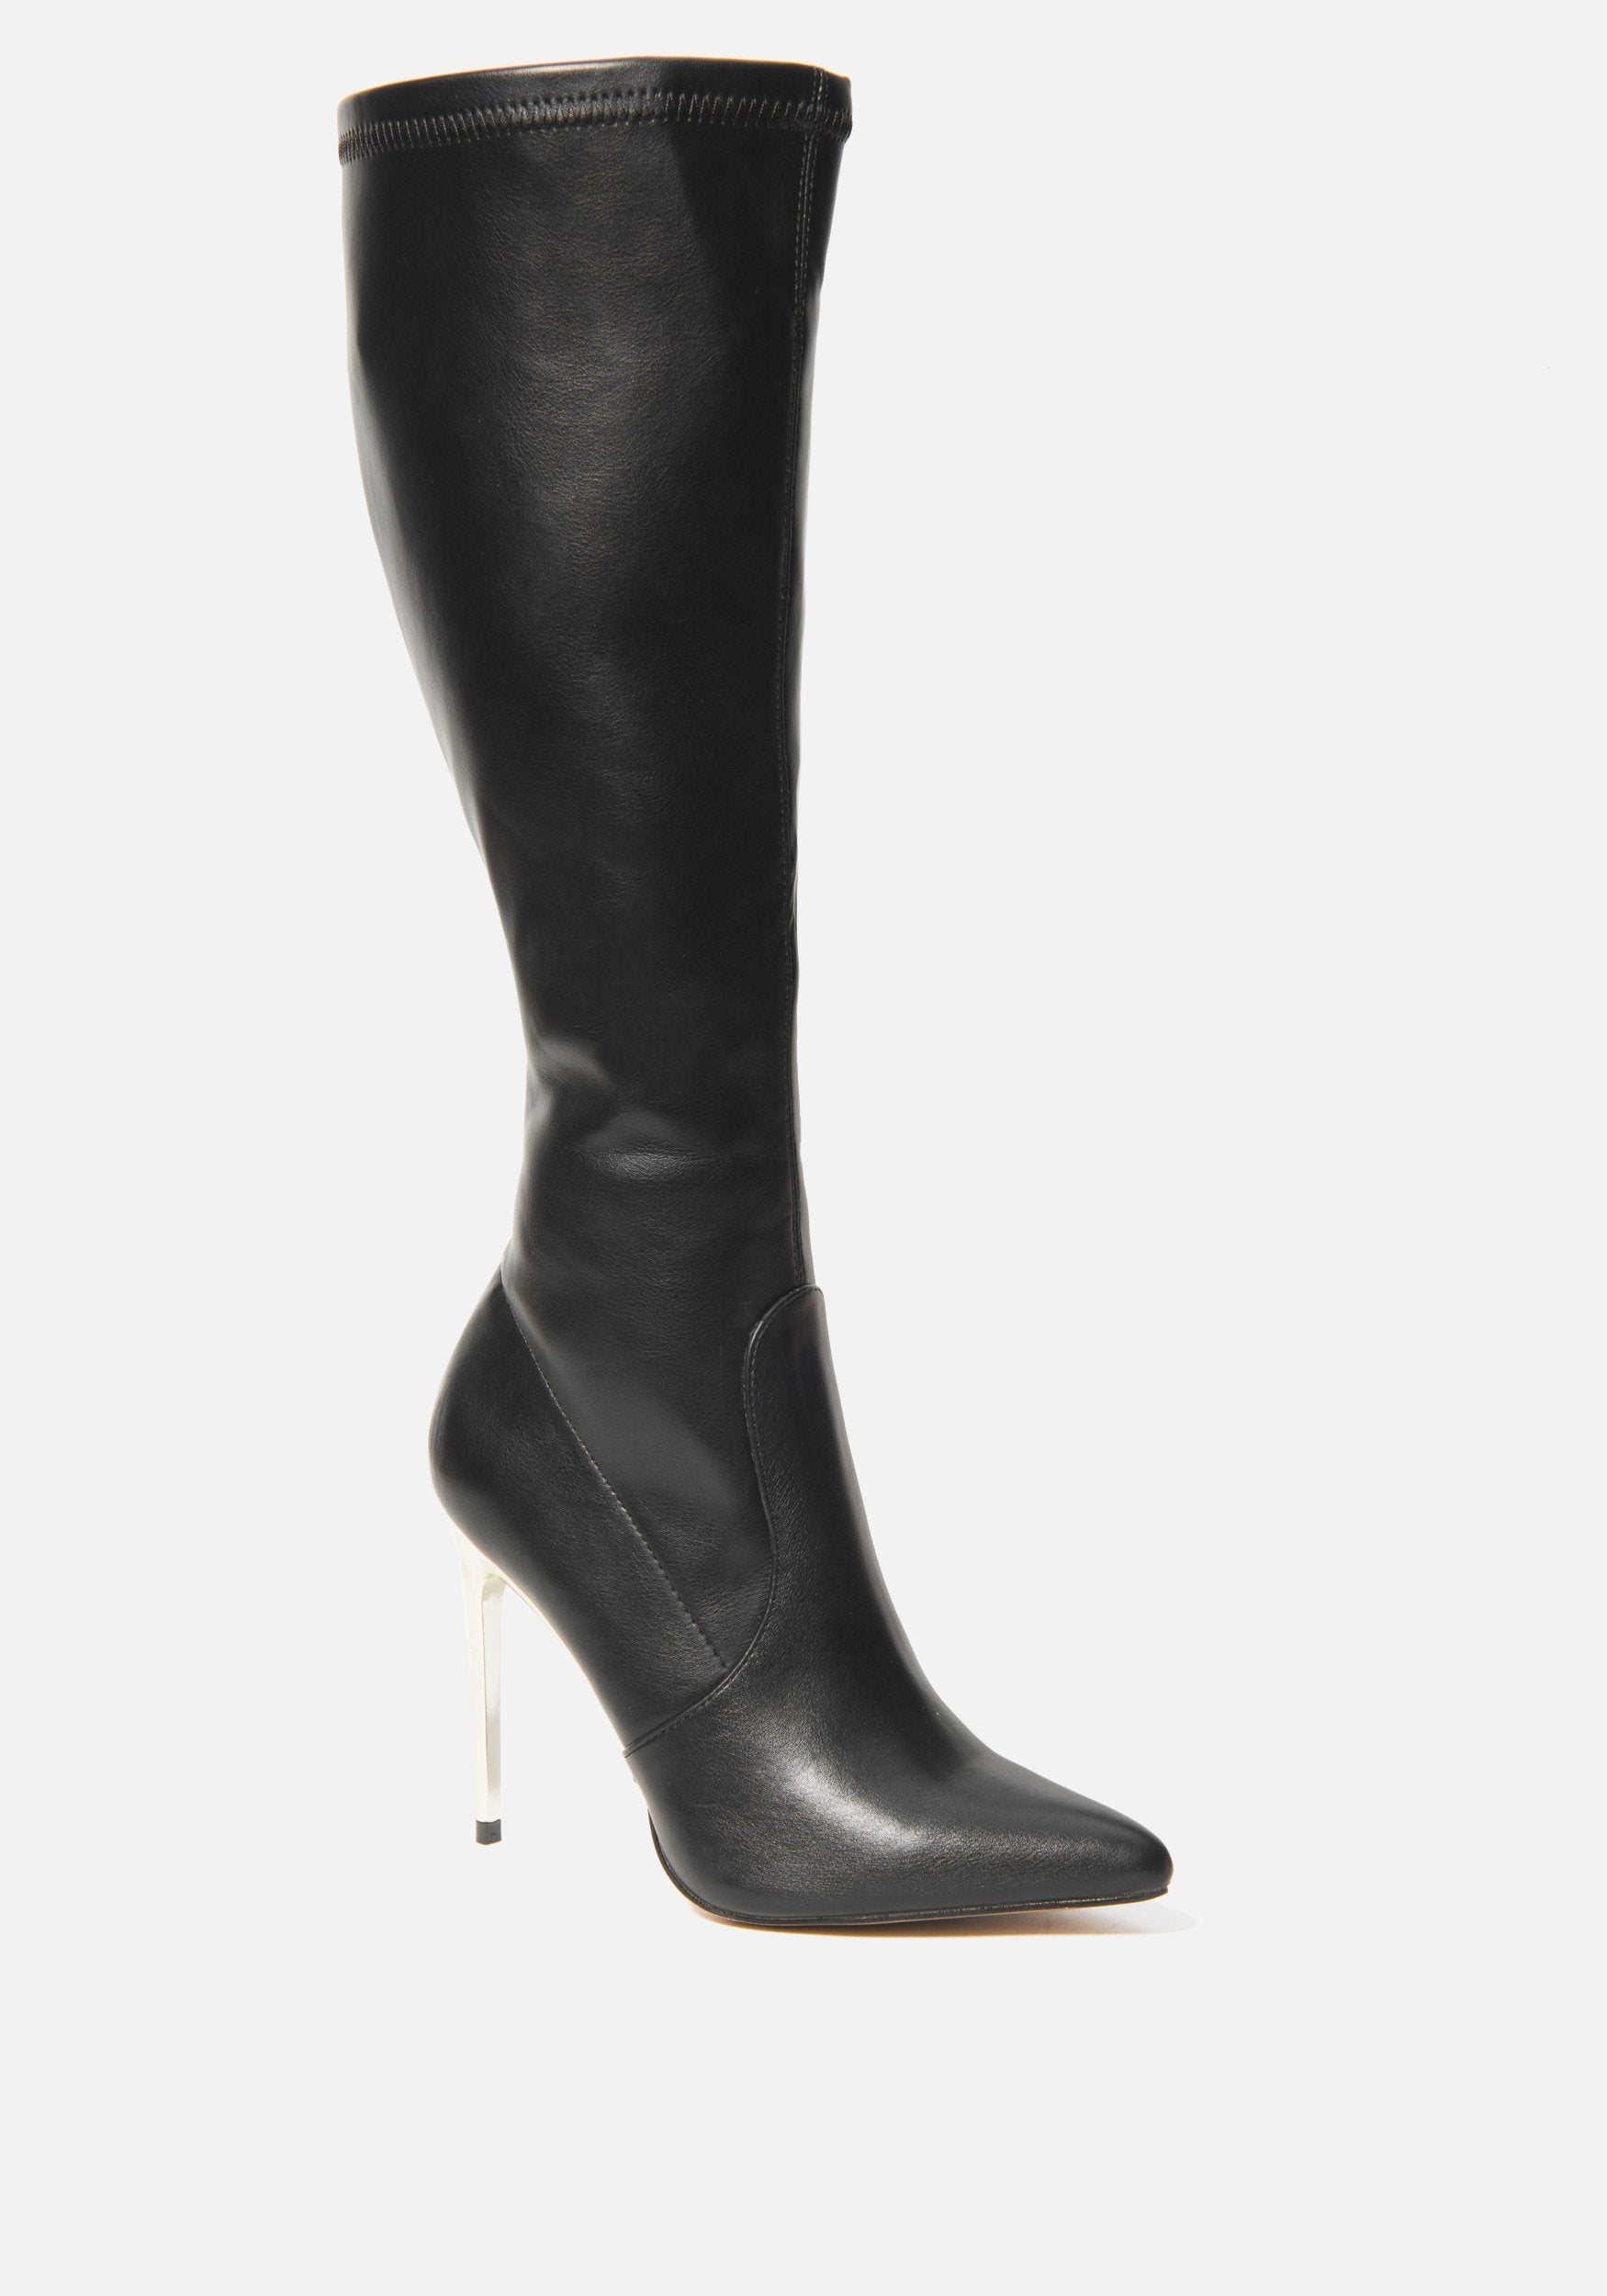 Bebe Women's Valeria Knee High Boots, Size 6 in BLACK Synthetic